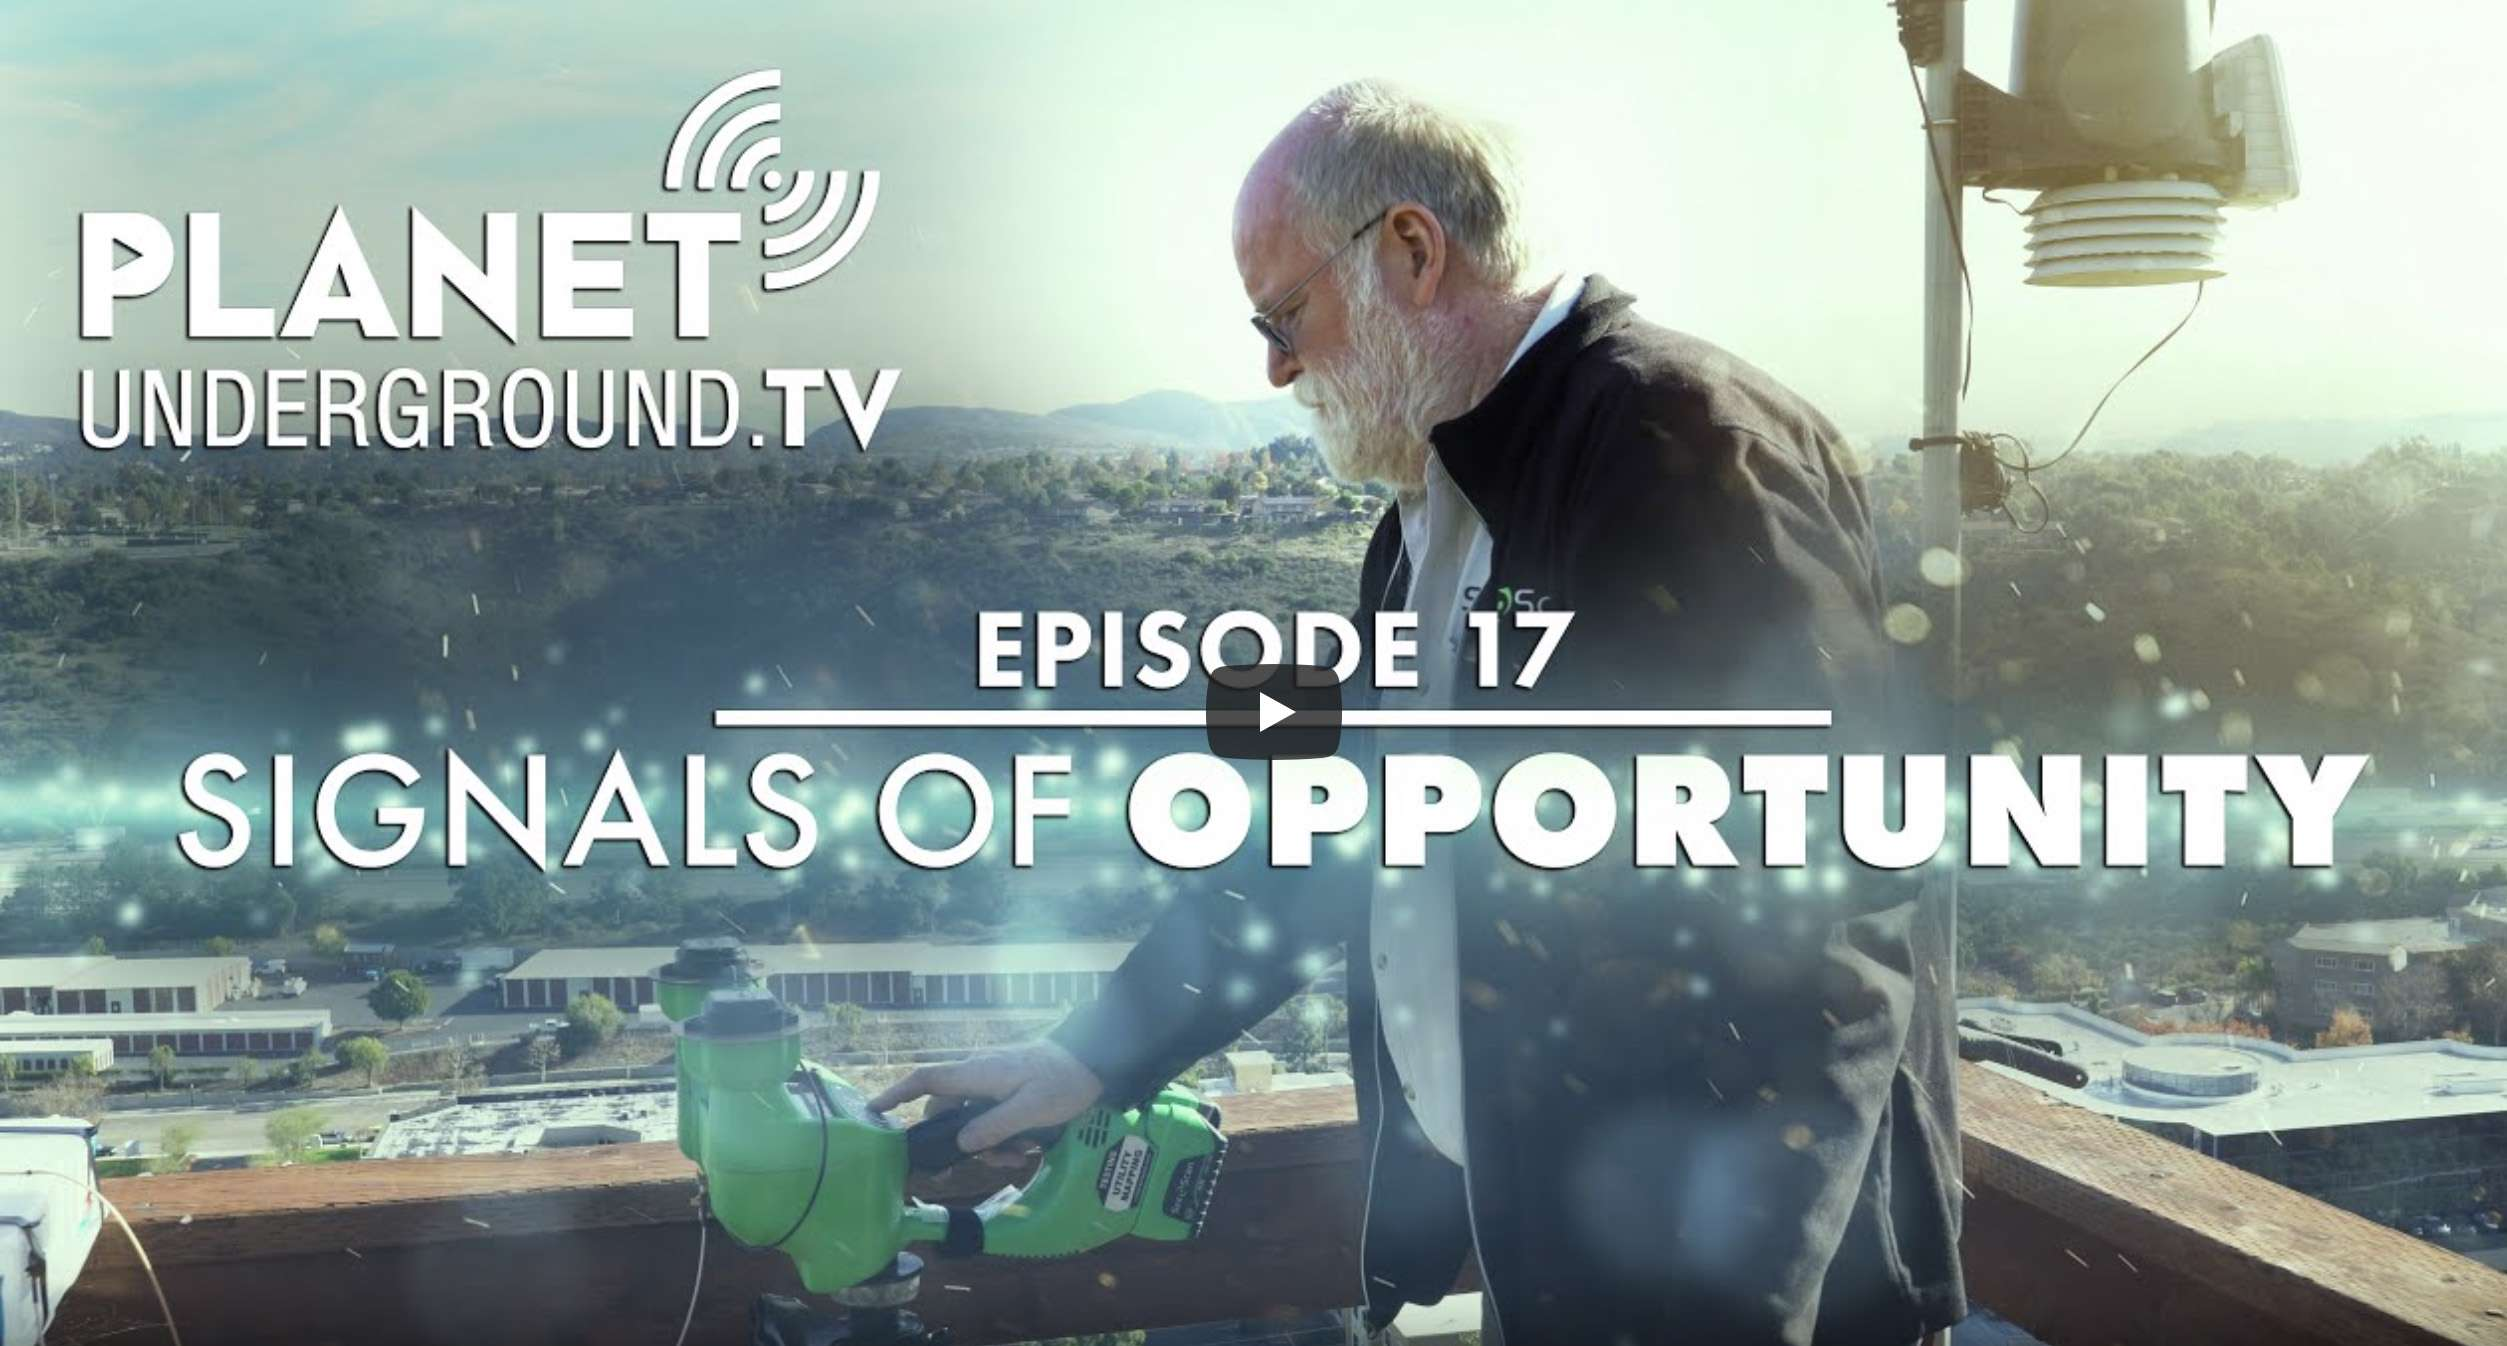 Episode 17: Signals of Opportunity